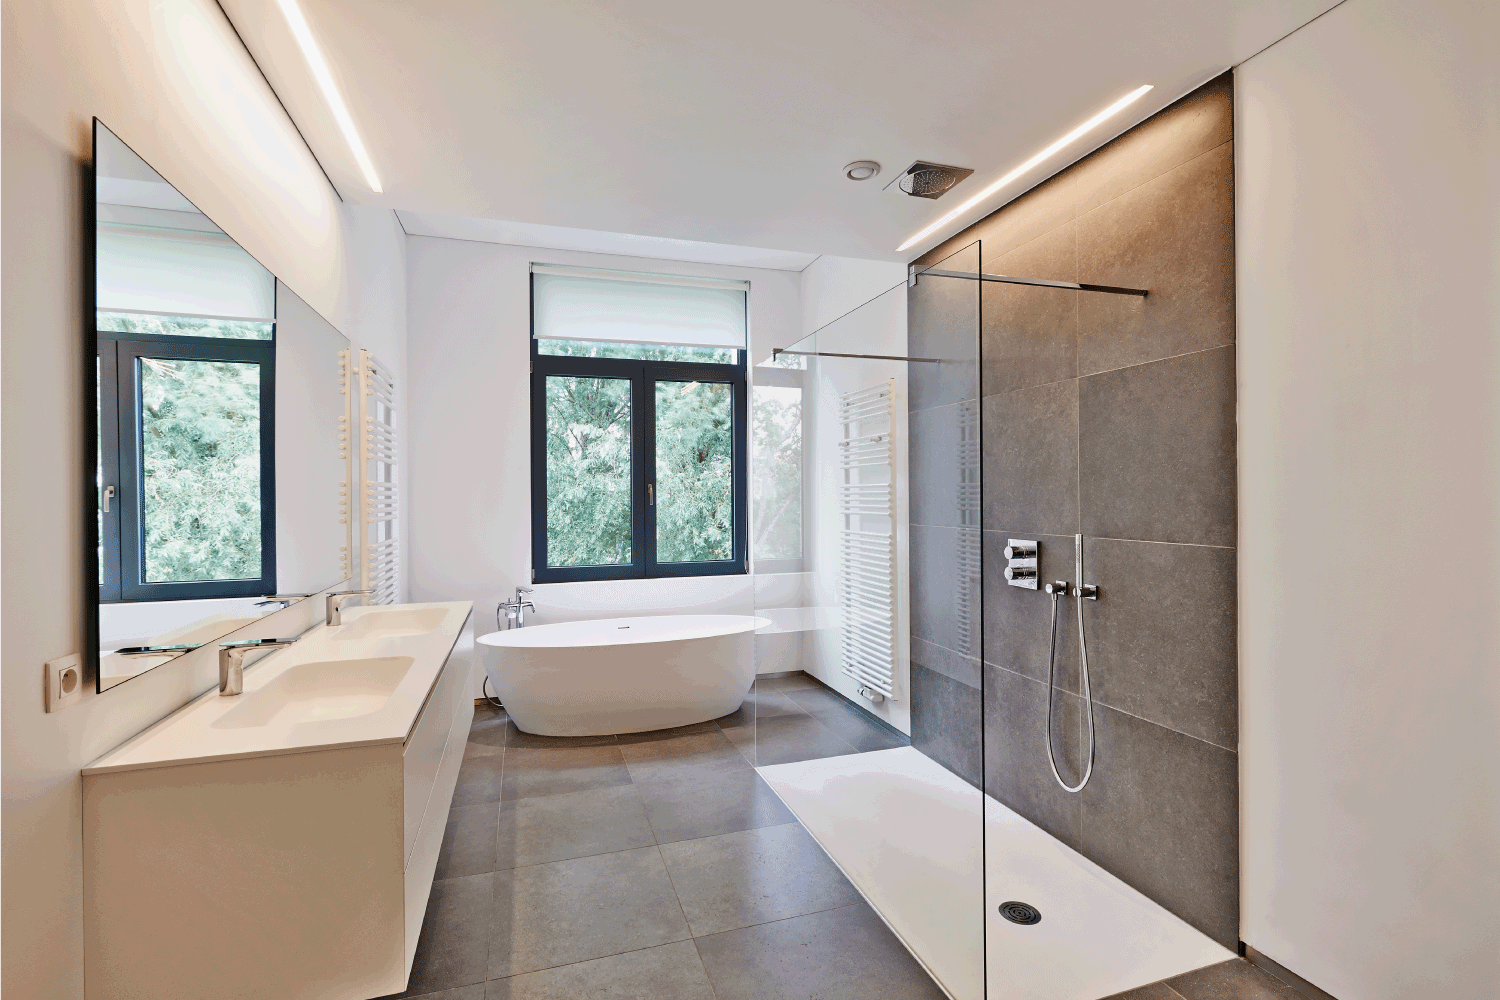 Luxury modern bathroom with glass partitioned shower area